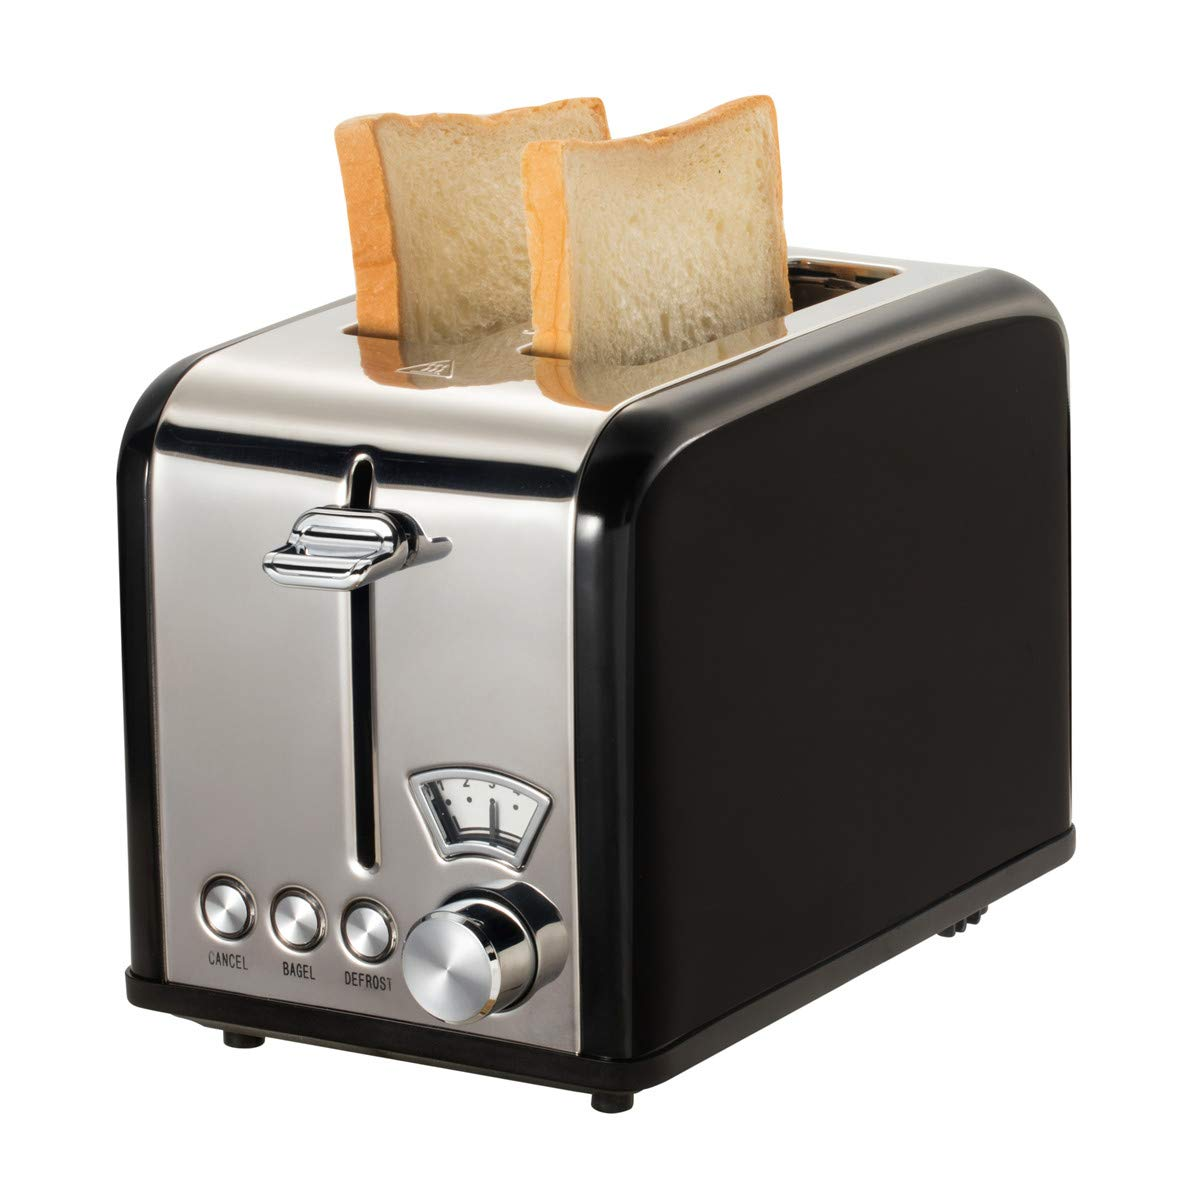 Retro Small Toaster with Bagel, Cancel, Defrost Function, Extra Wide Slot Compact Stainless Steel Toasters for Bread Waffles (2 Slice, Black)